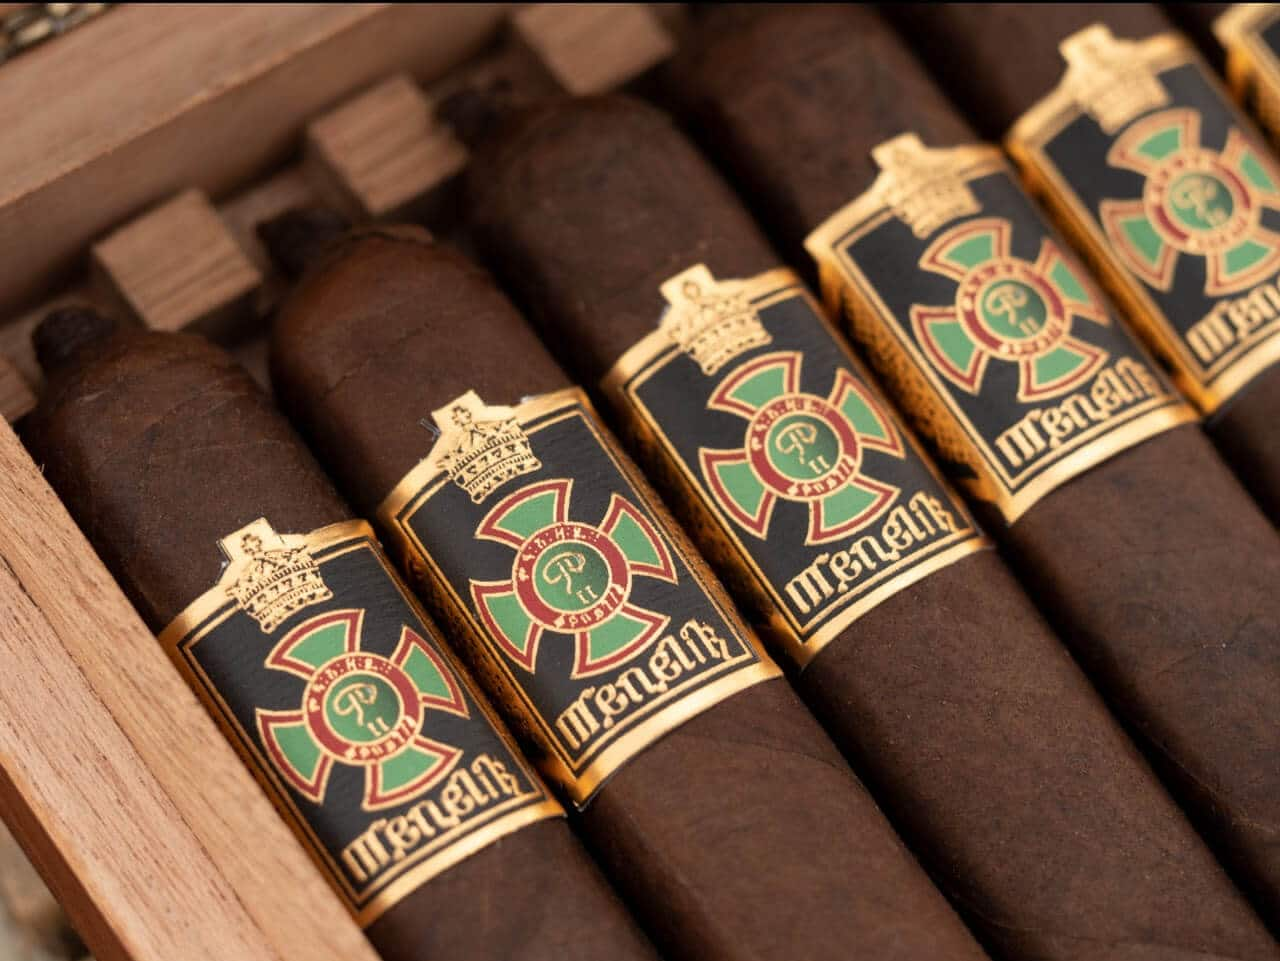 Cigar News: Foundation Cigars Ships Menelik, #142 Lancero and Highclere Victorian